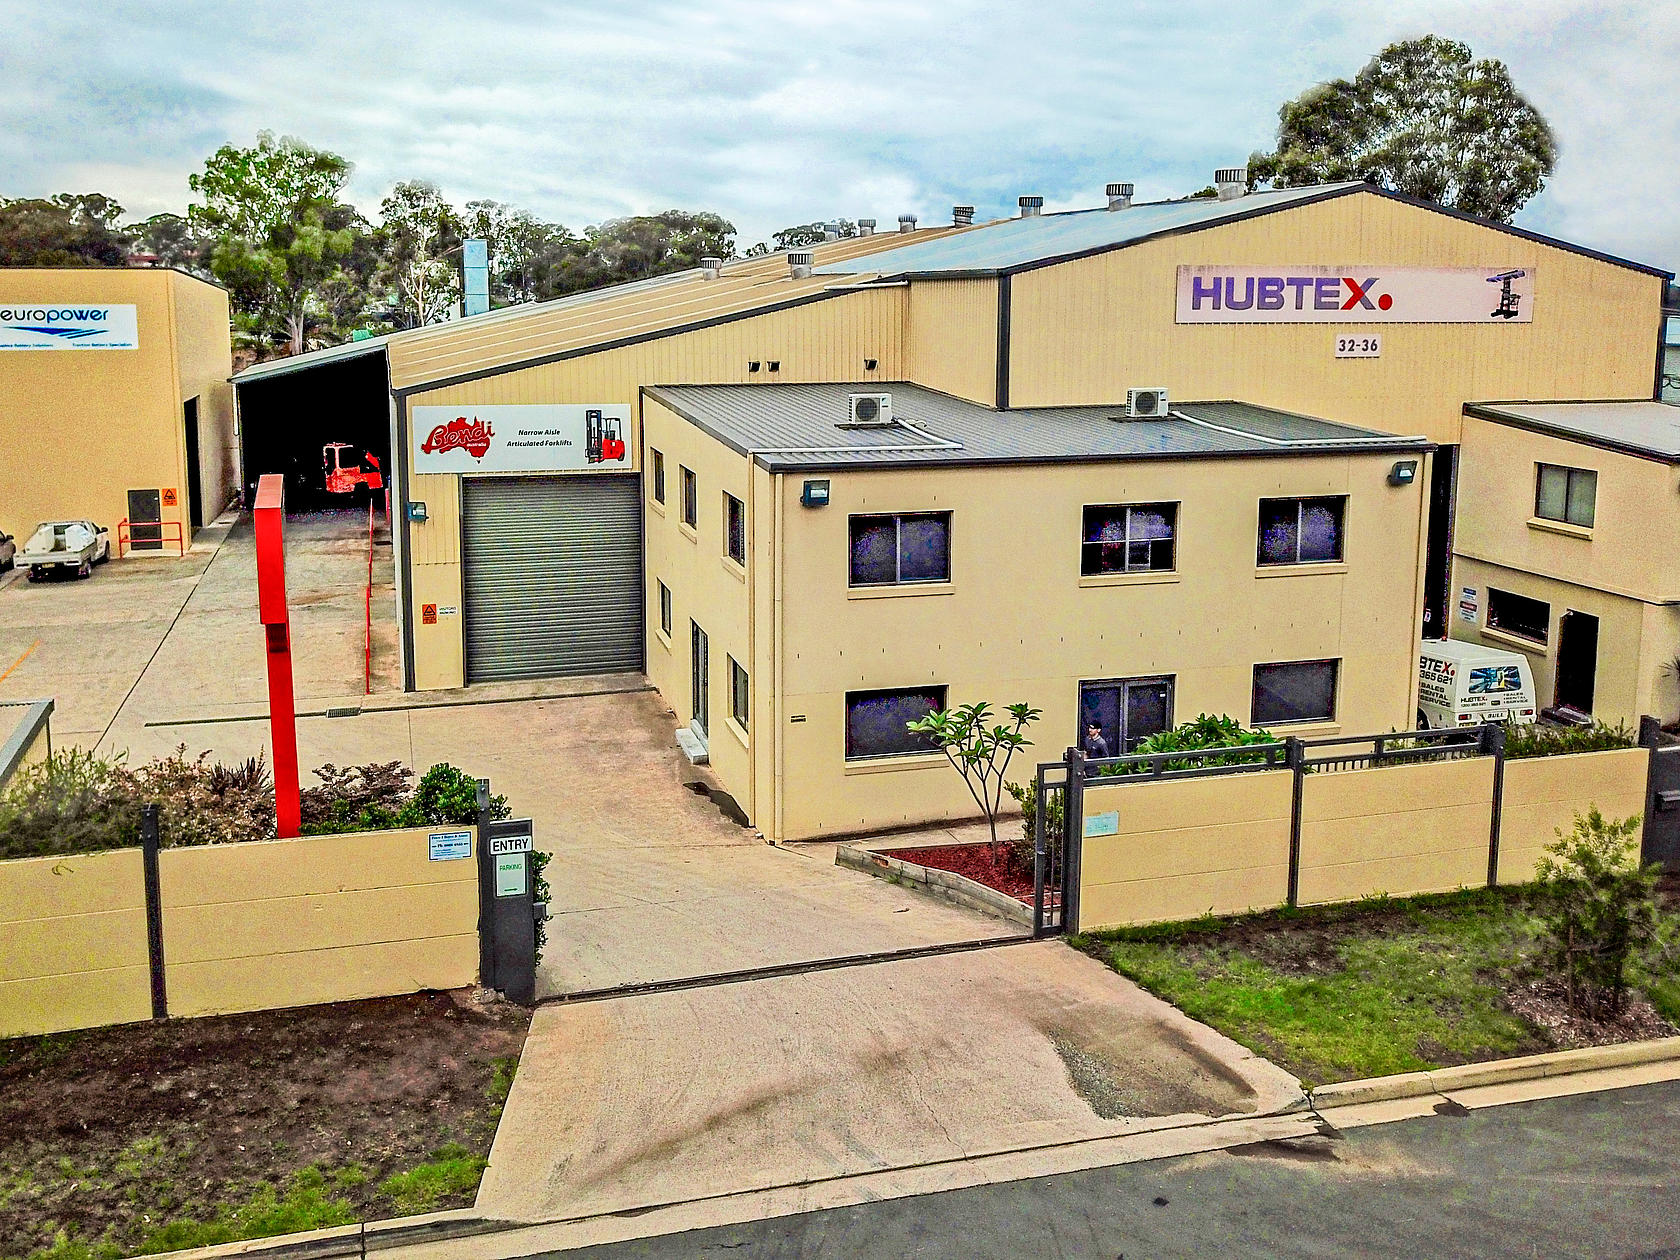 HUBTEX Australia new member of the HUBTEX Group